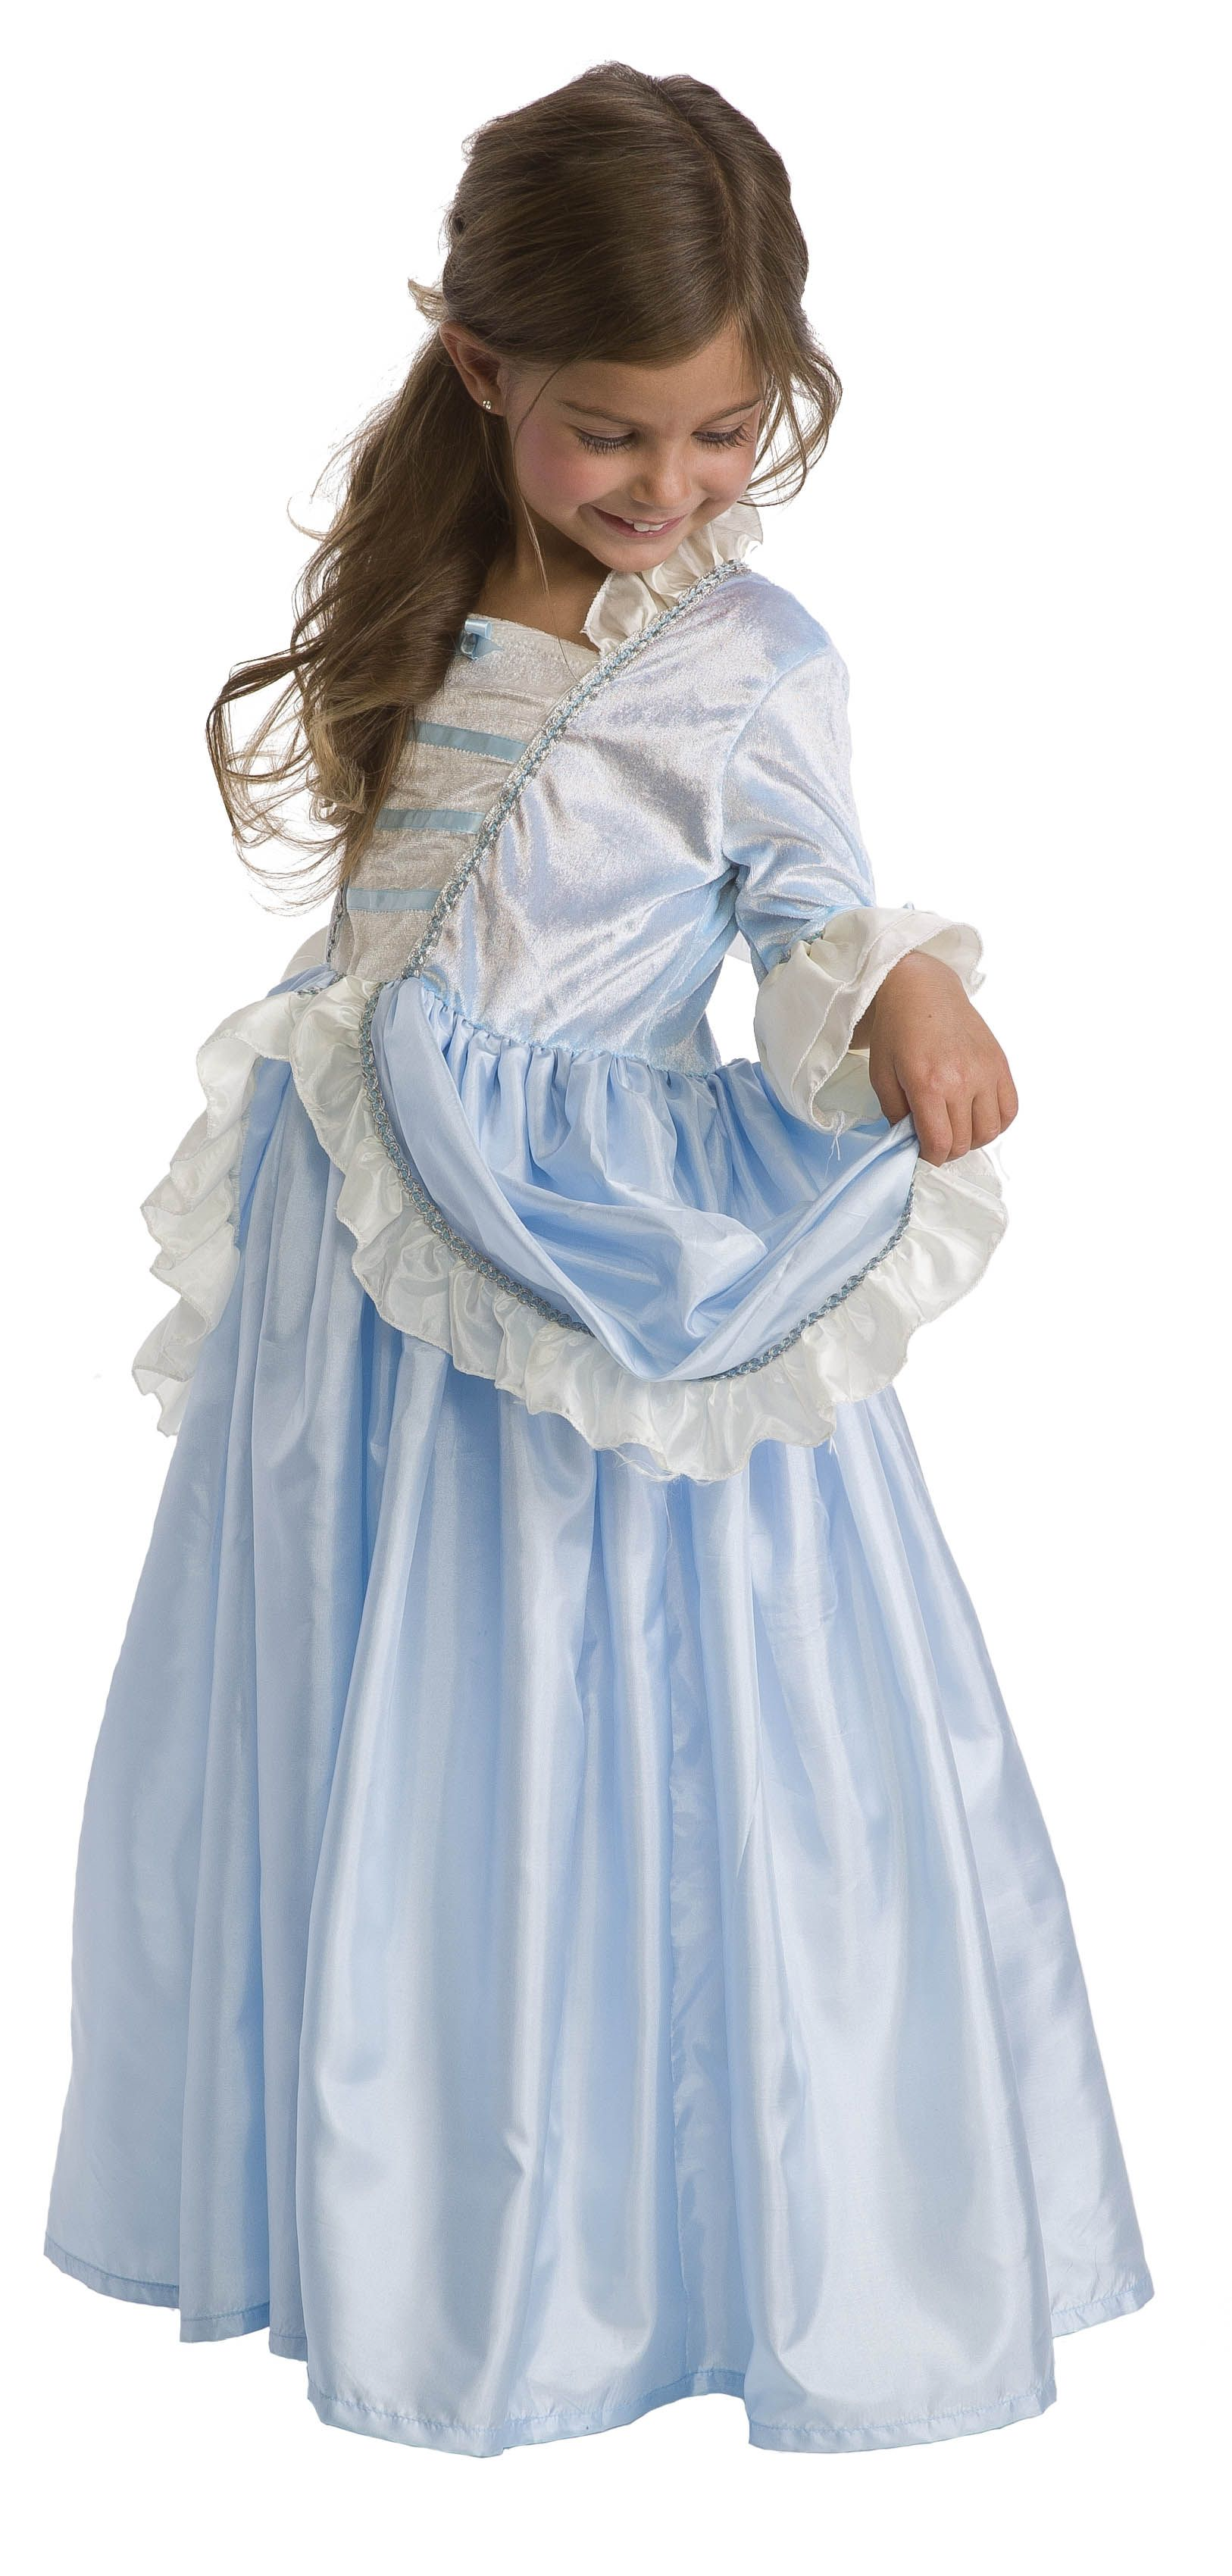 Blue-Parisian-Princess-Dress-Up-Costume-S-M-L-XL